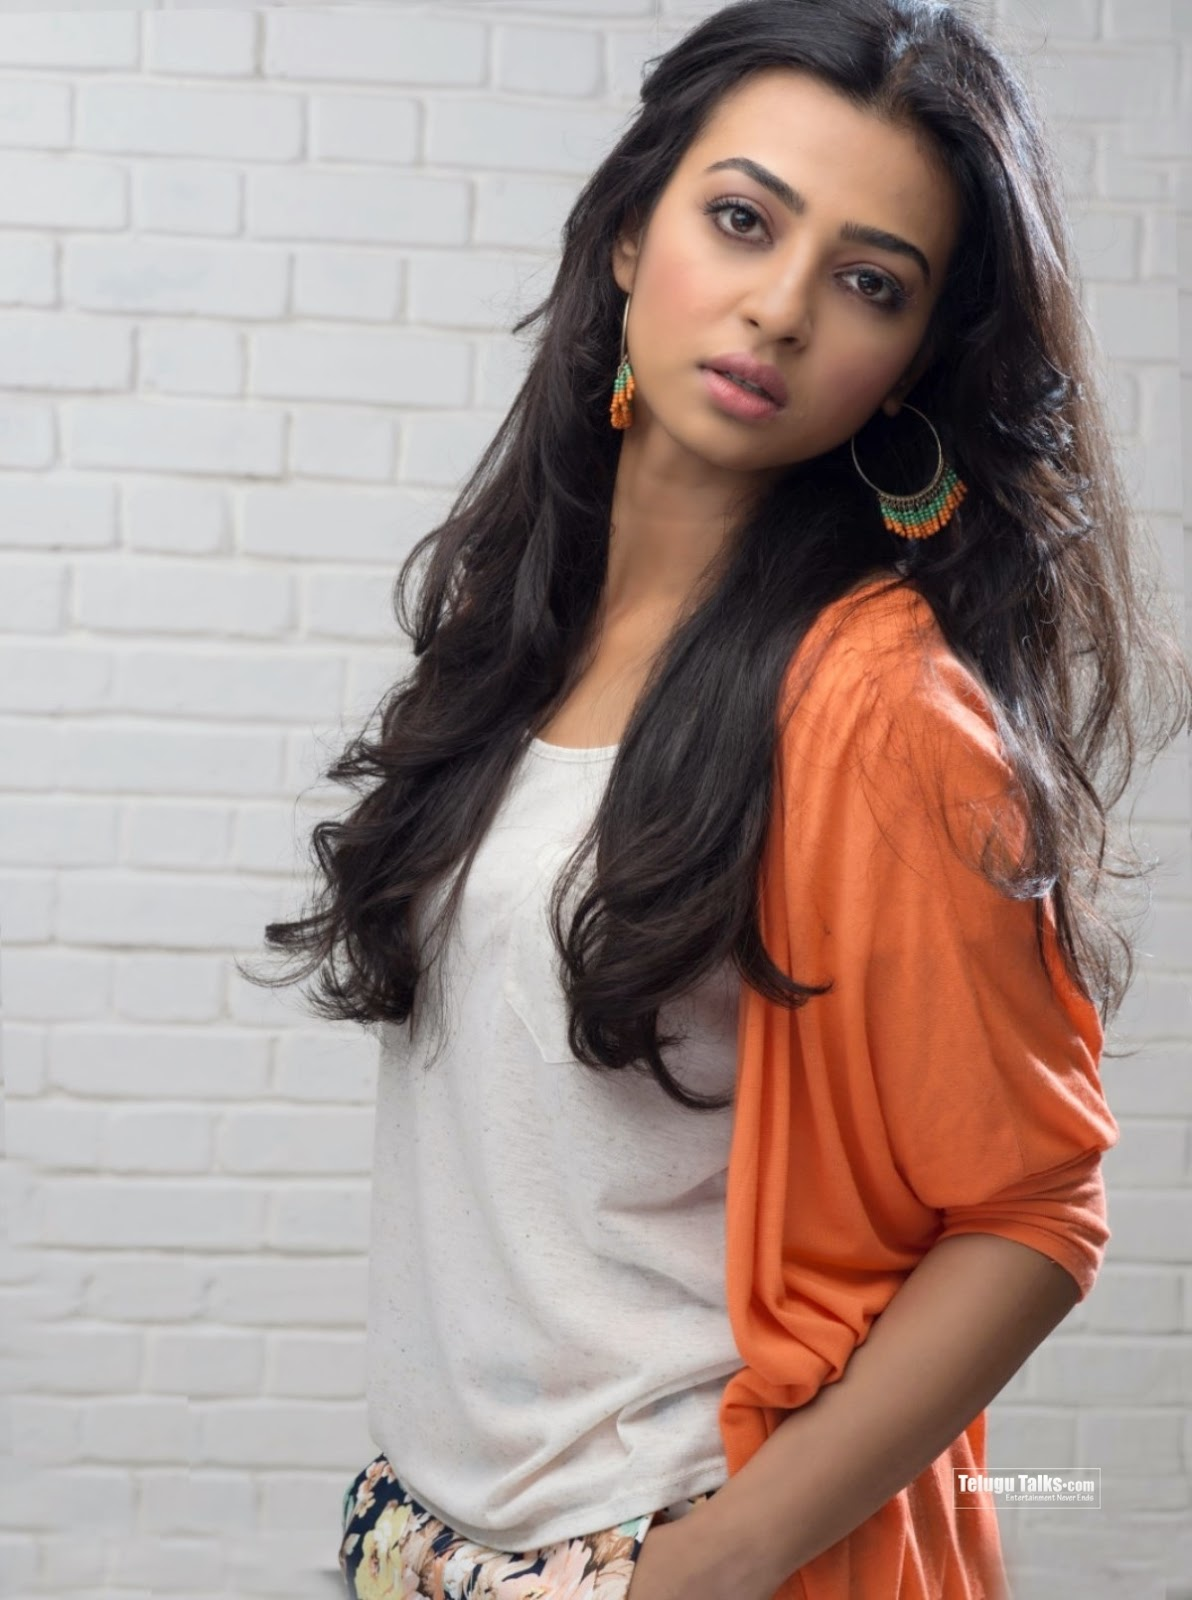 Radhika Apte Hot Photo